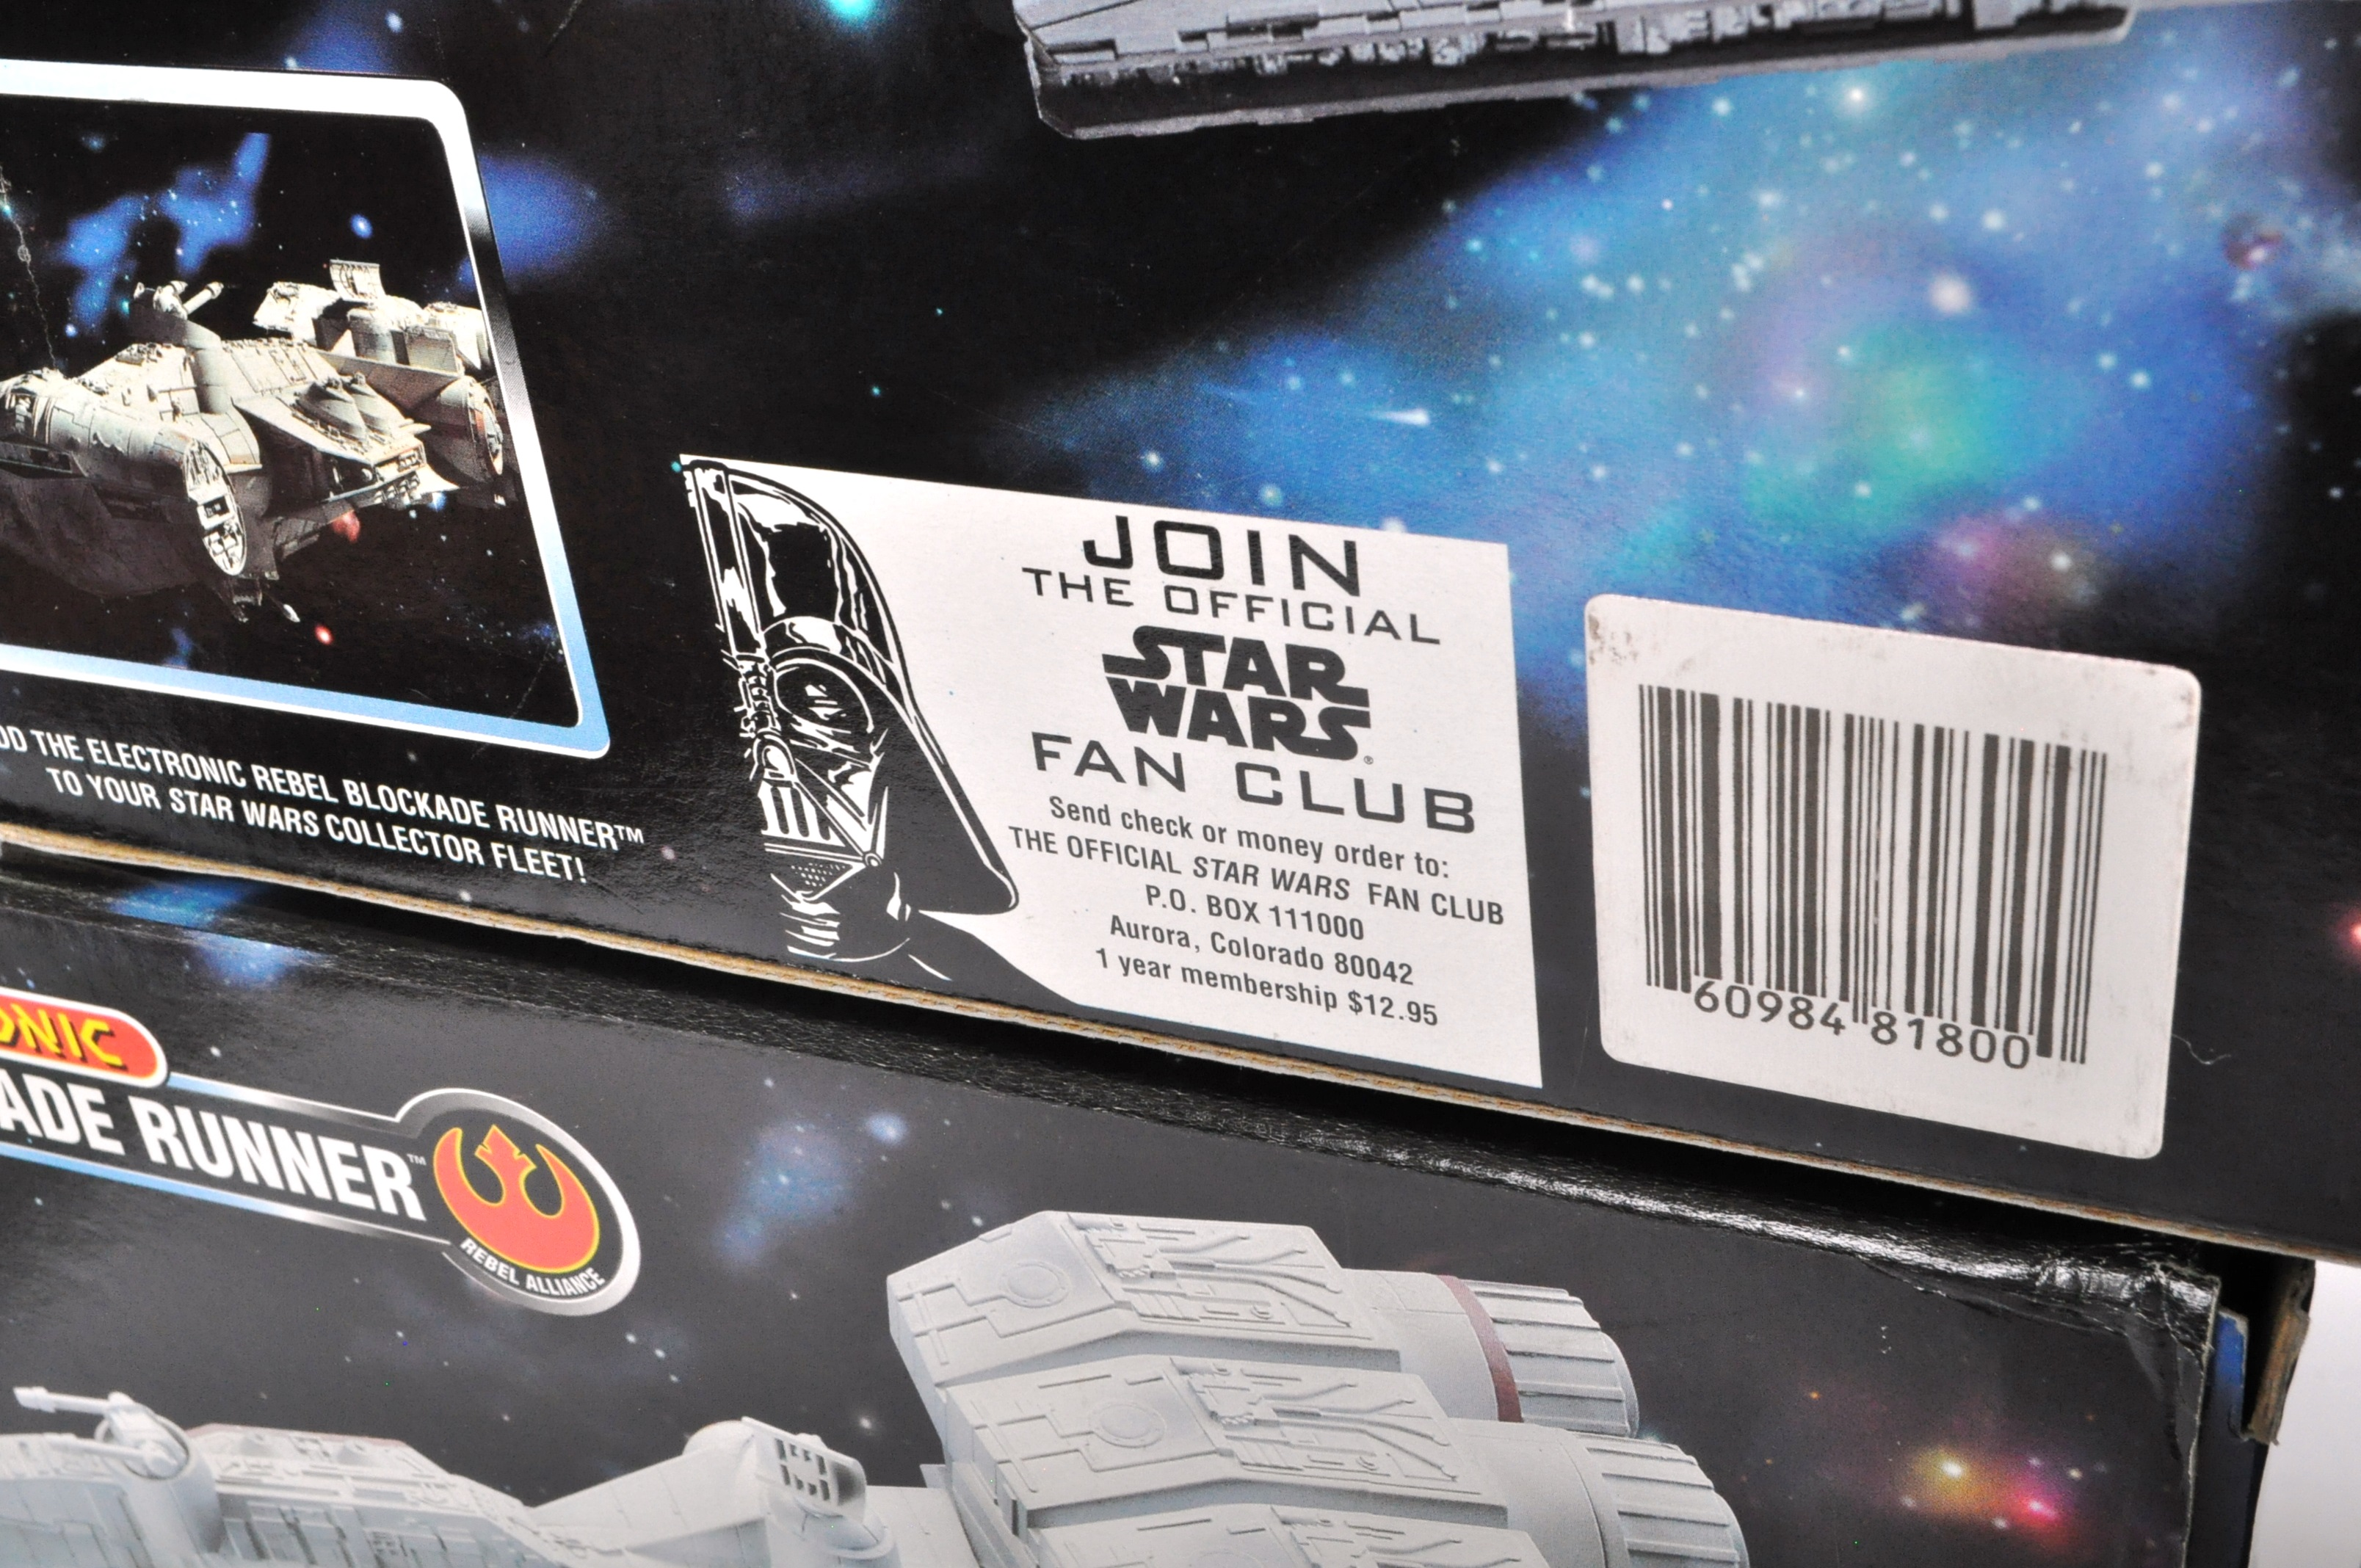 STAR WARS - COLLECTION OF KENNER ' COLLECTOR FLEET ' PLAYSETS - Image 5 of 5